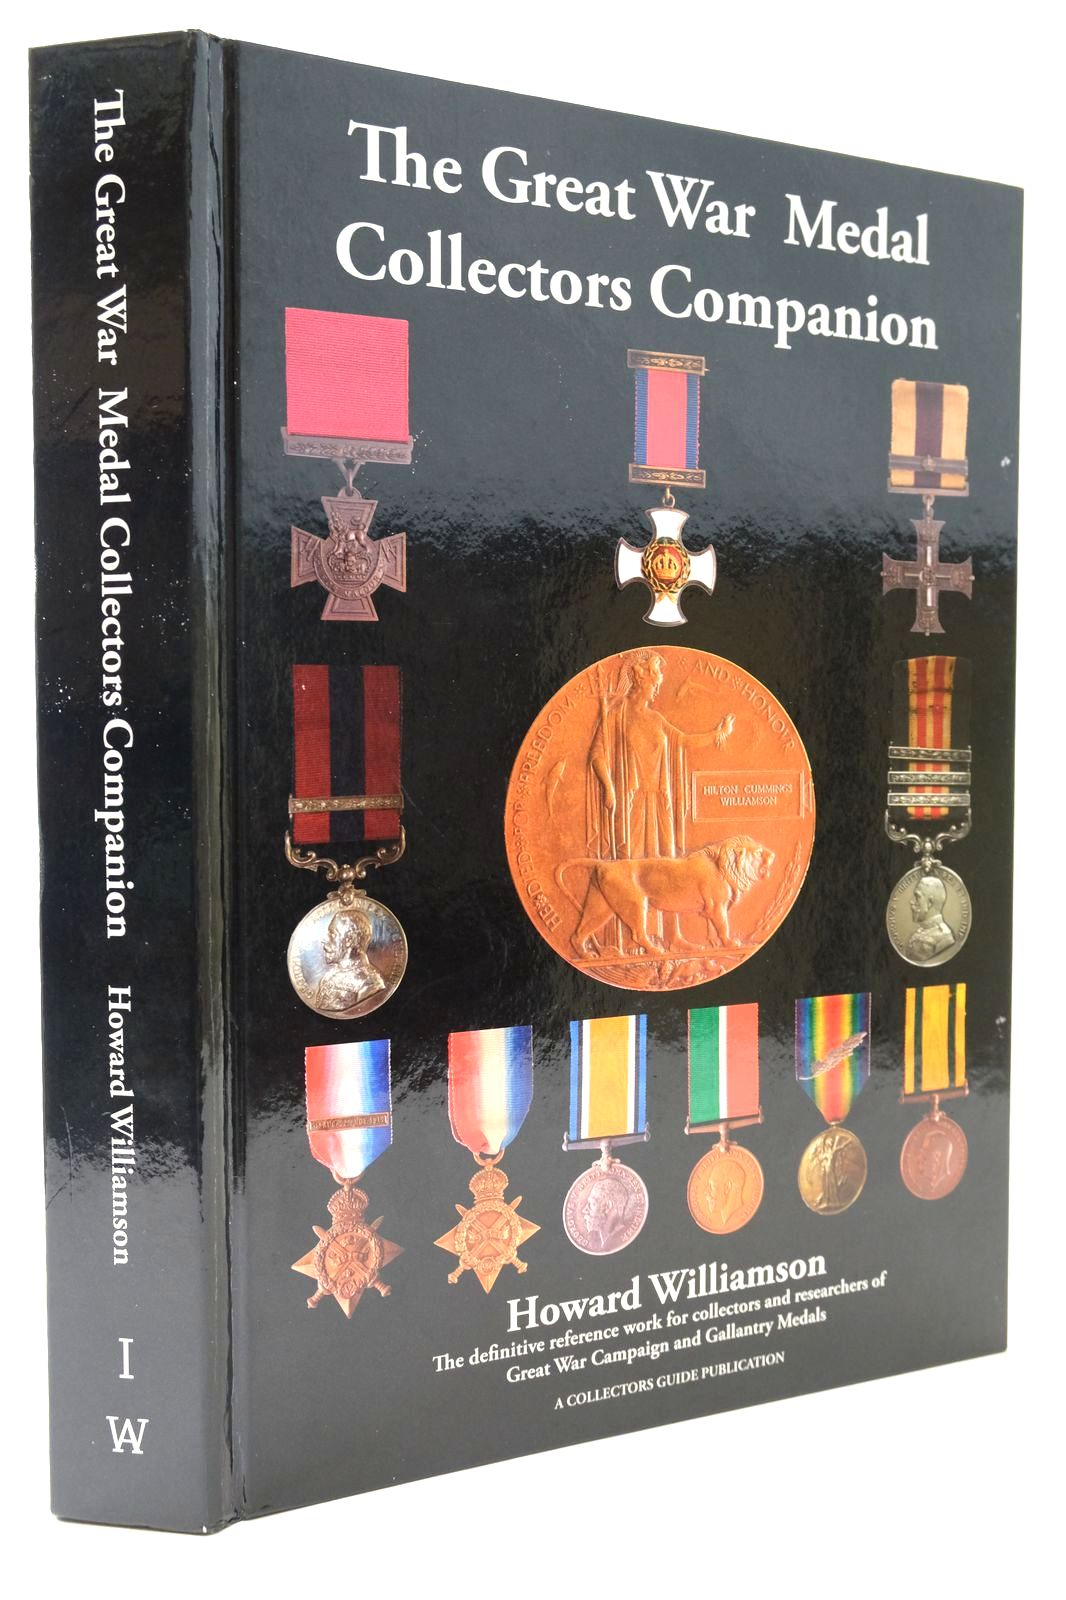 Photo of THE GREAT WAR MEDAL COLLECTORS COMPANION- Stock Number: 2132630